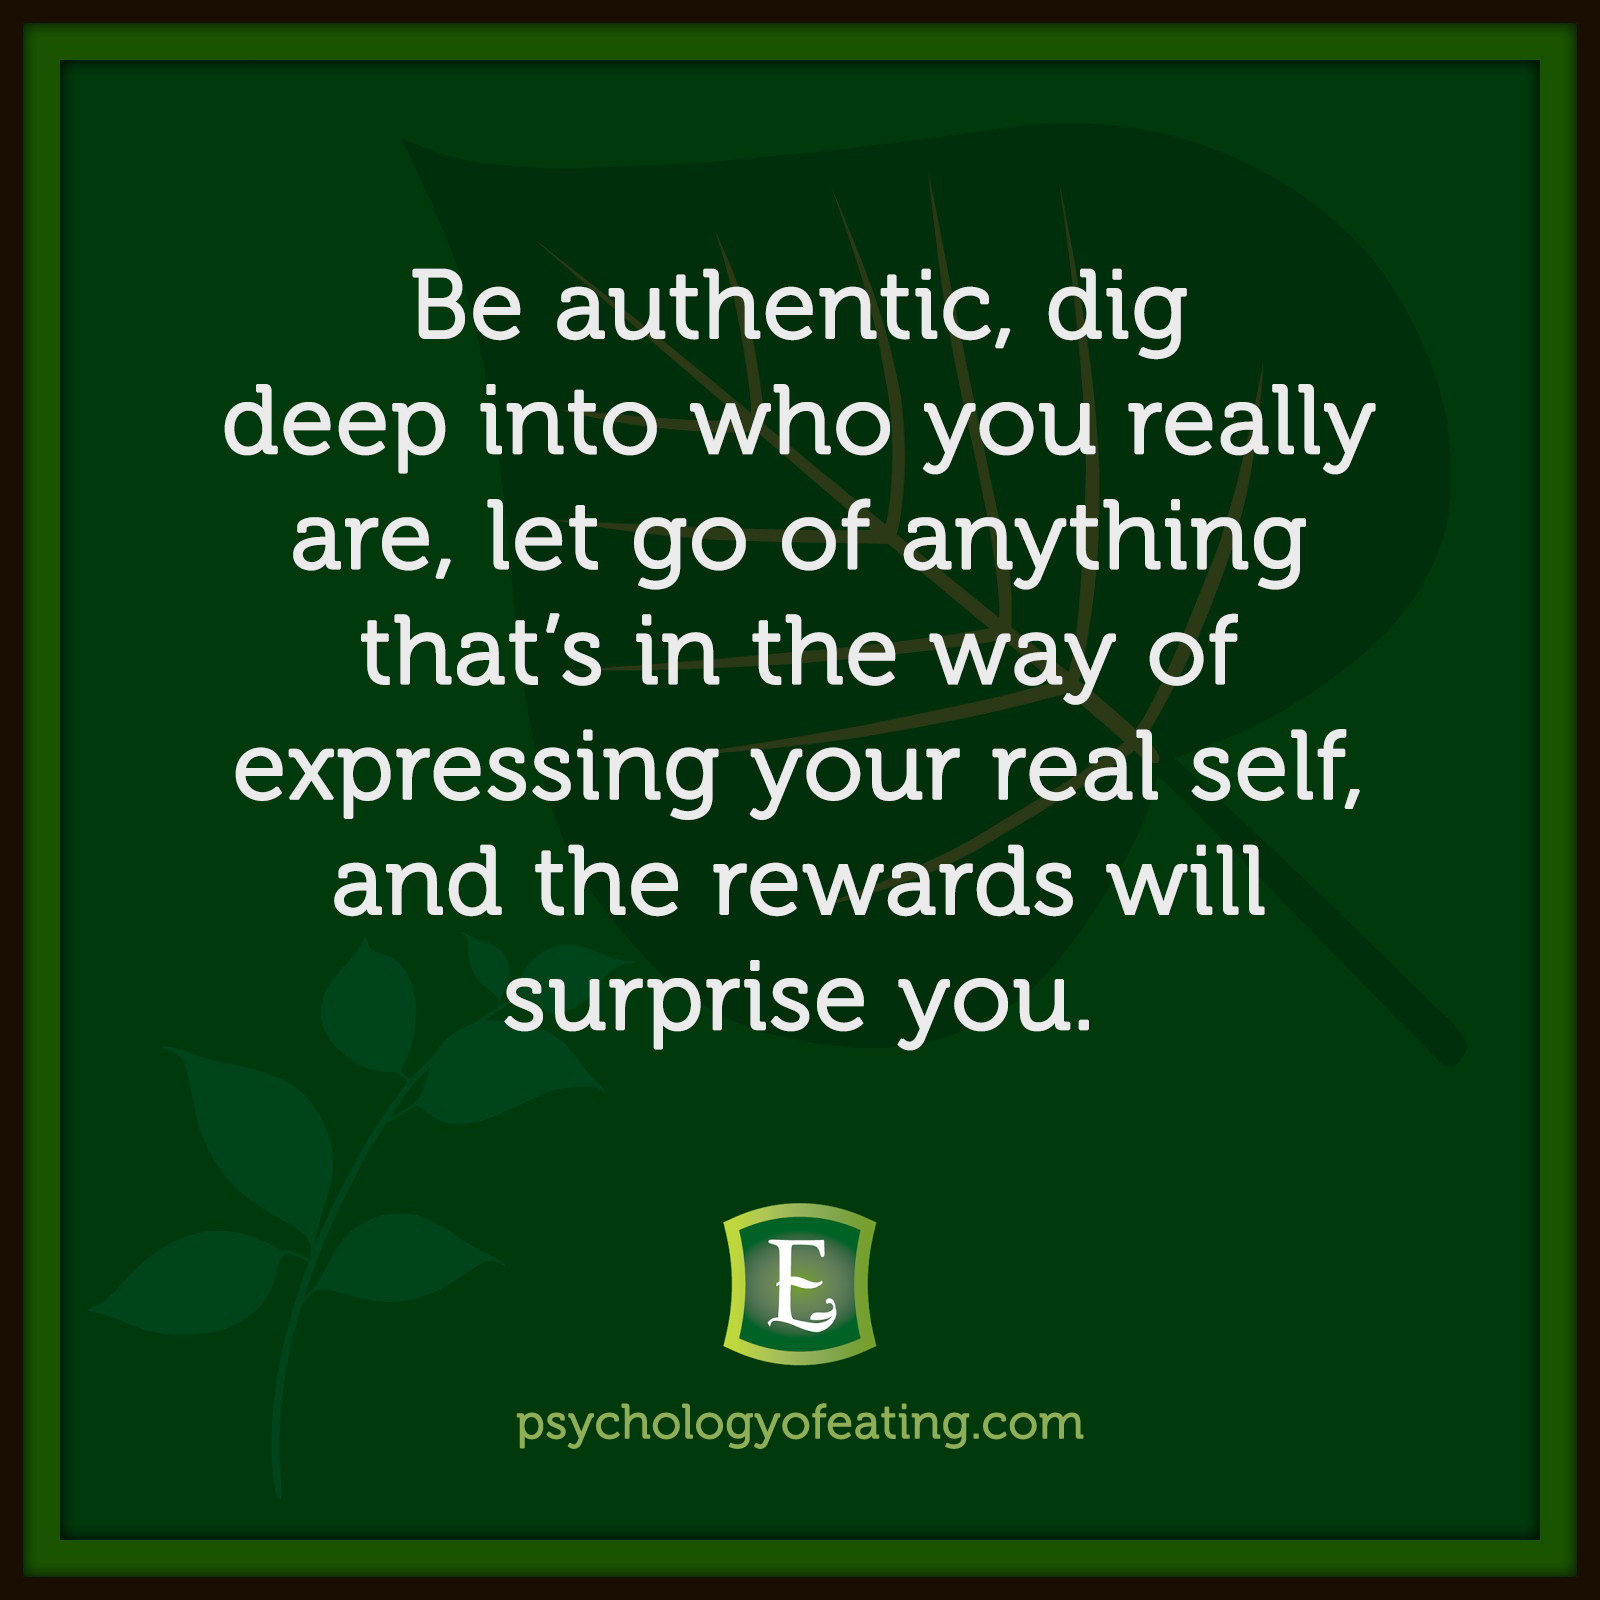 Be authentic, dig deep into who you really are, let go of anything that's in the way of expressing your real self, and the rewards will surprise you. #health #nutrition #eatingpsychology #IPE